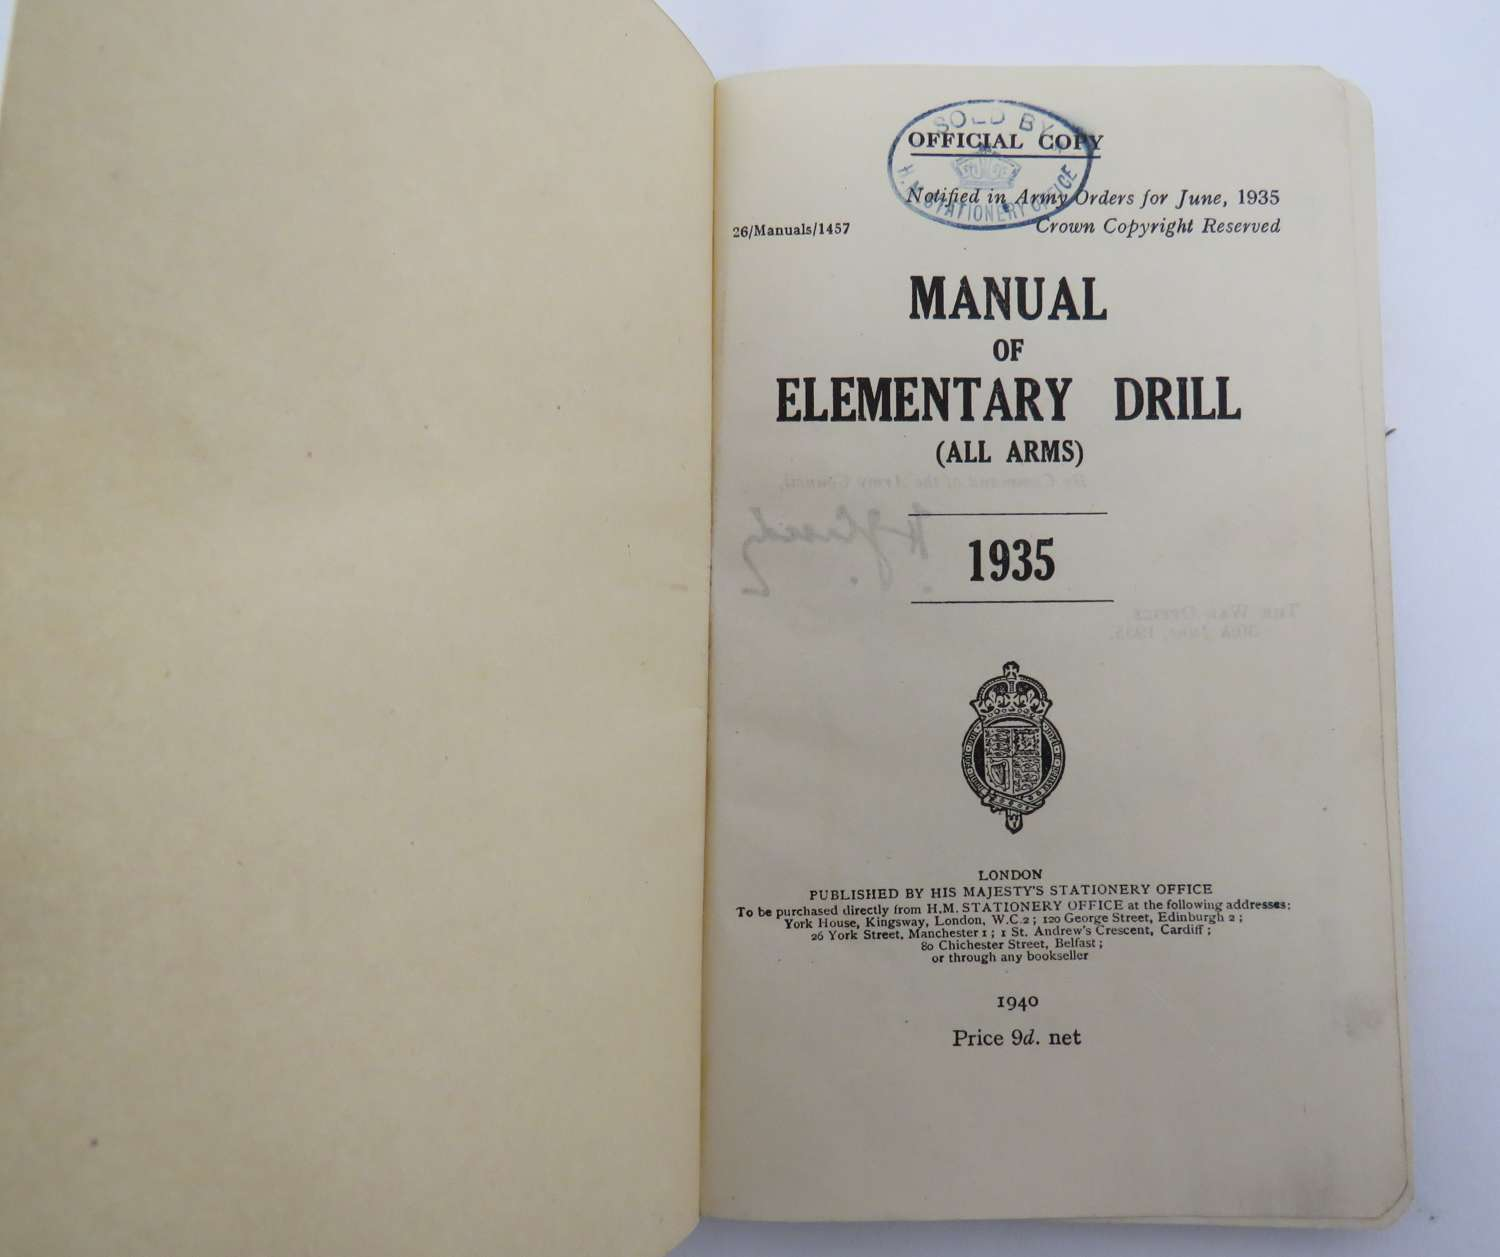 Manual of Elementary Drill 1935